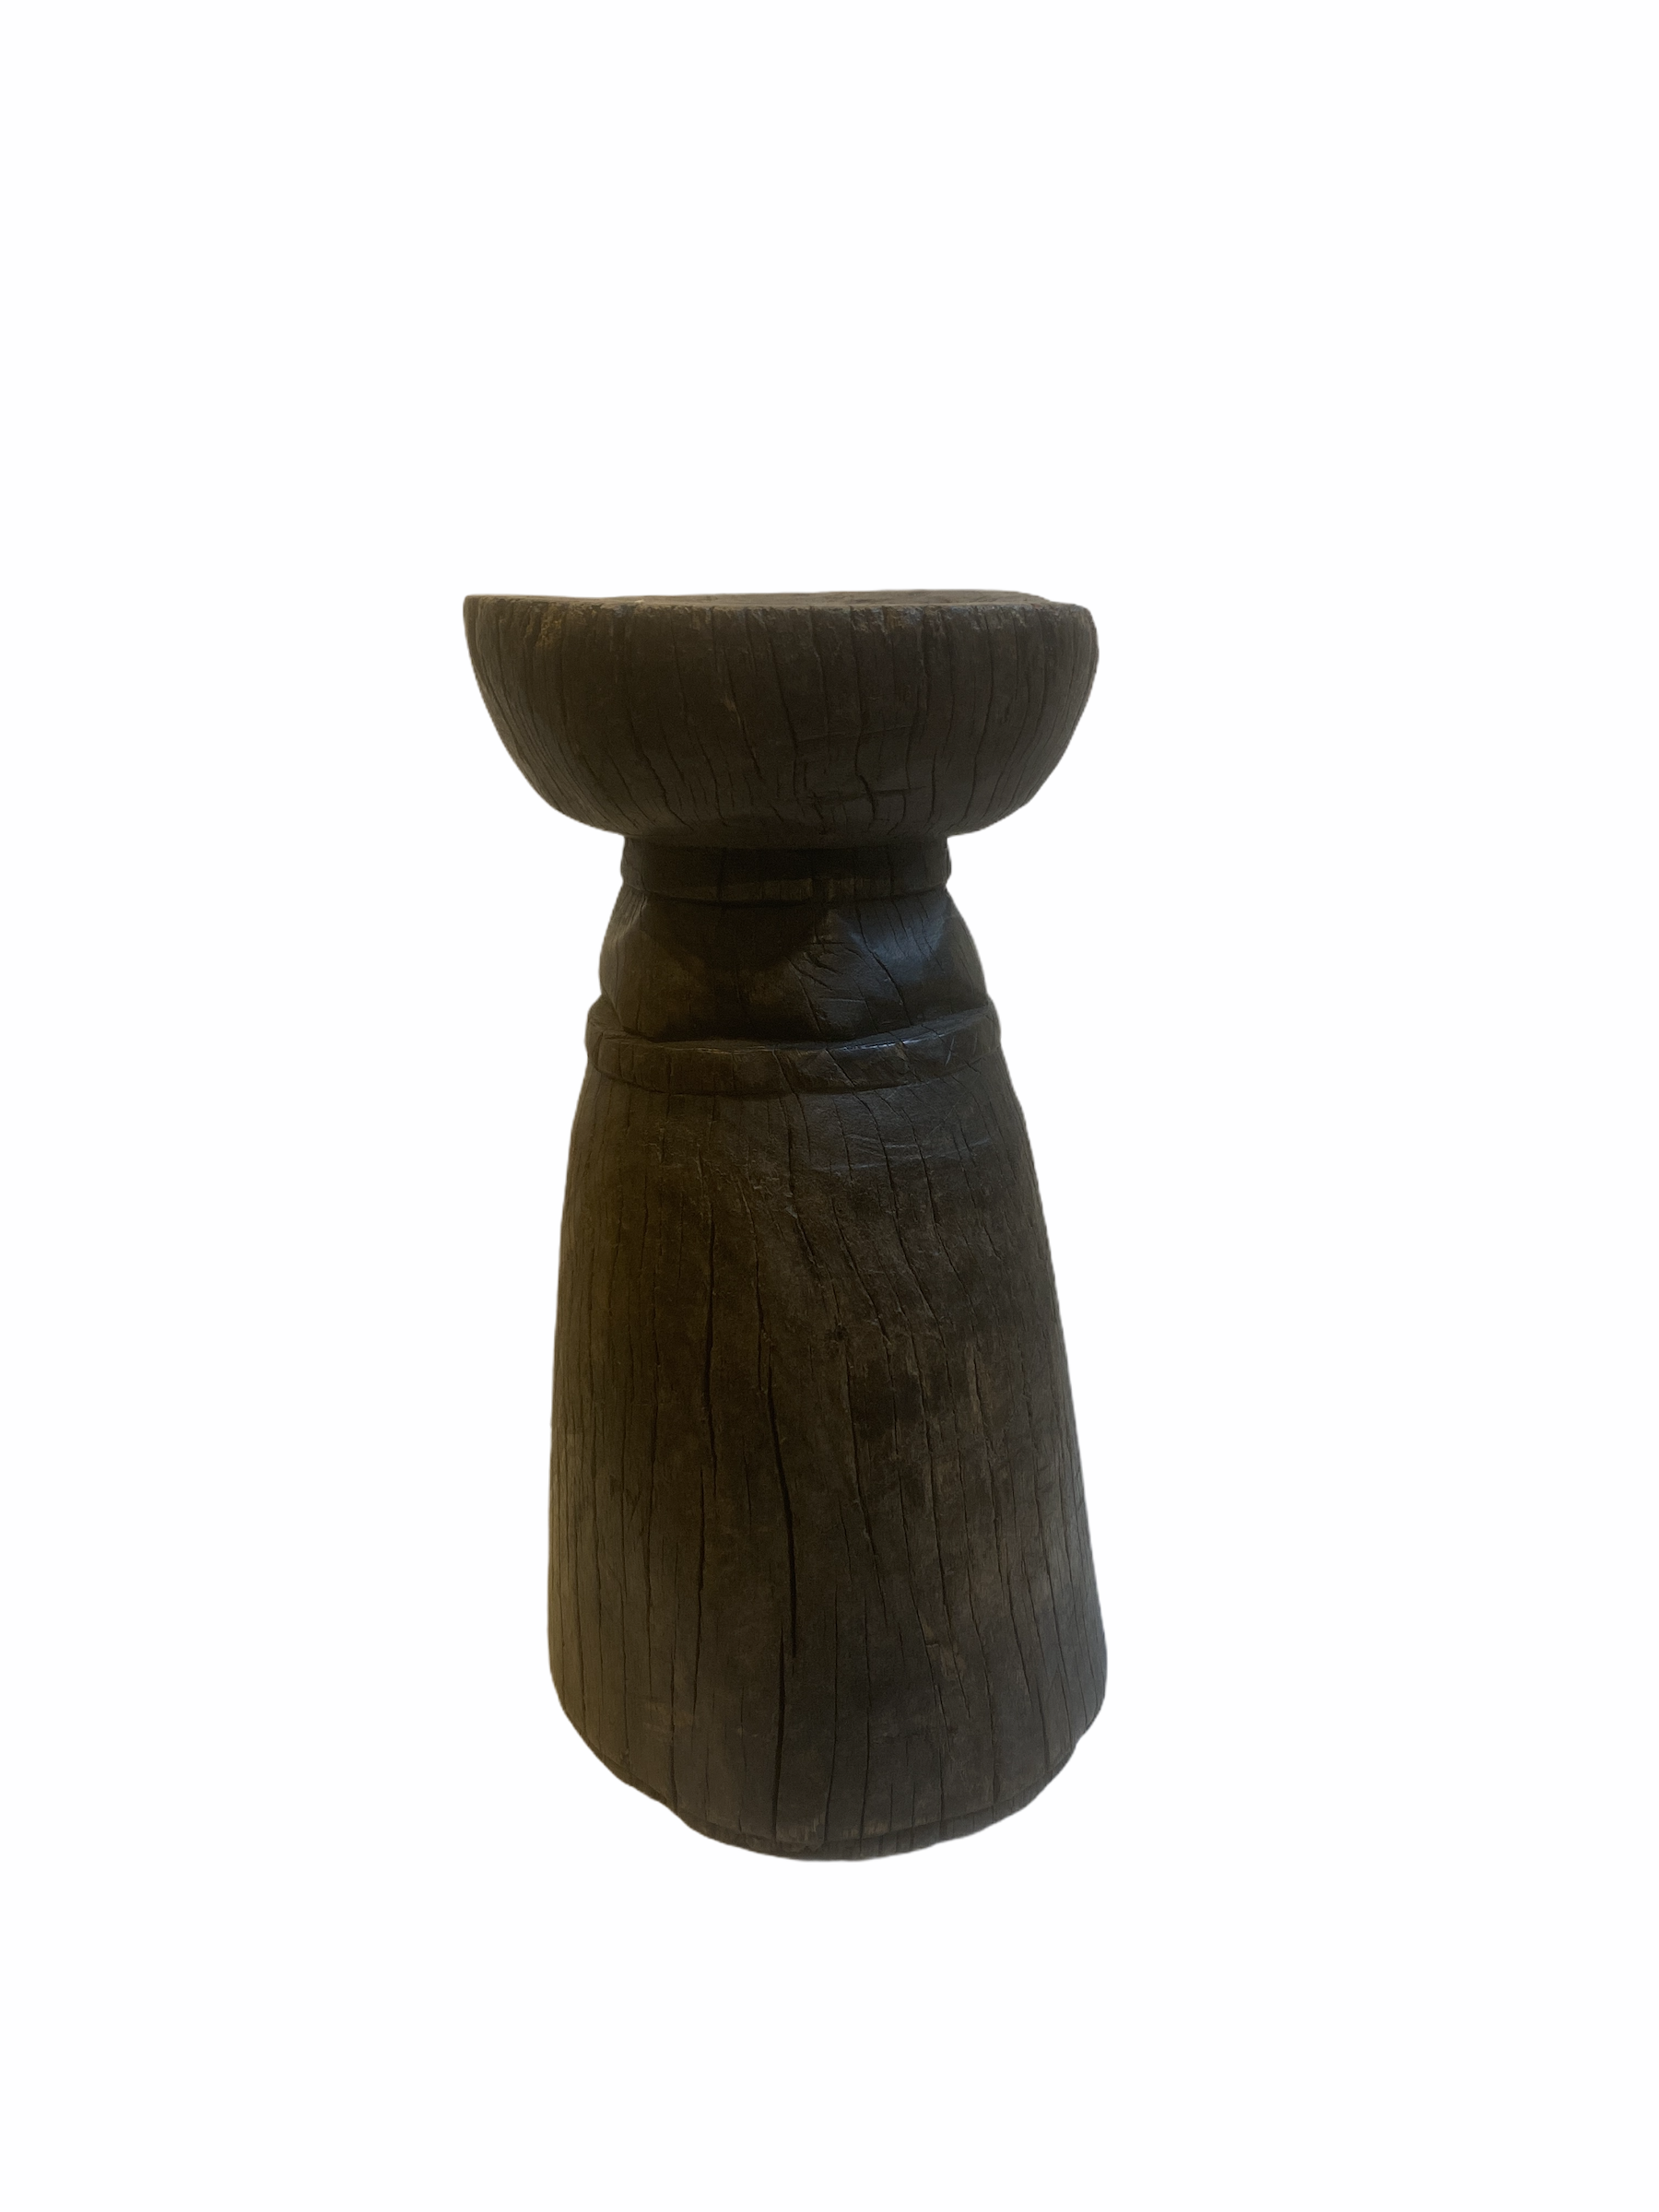 Lozi Grain Stomper (2) Stool/Side Table - Zambia